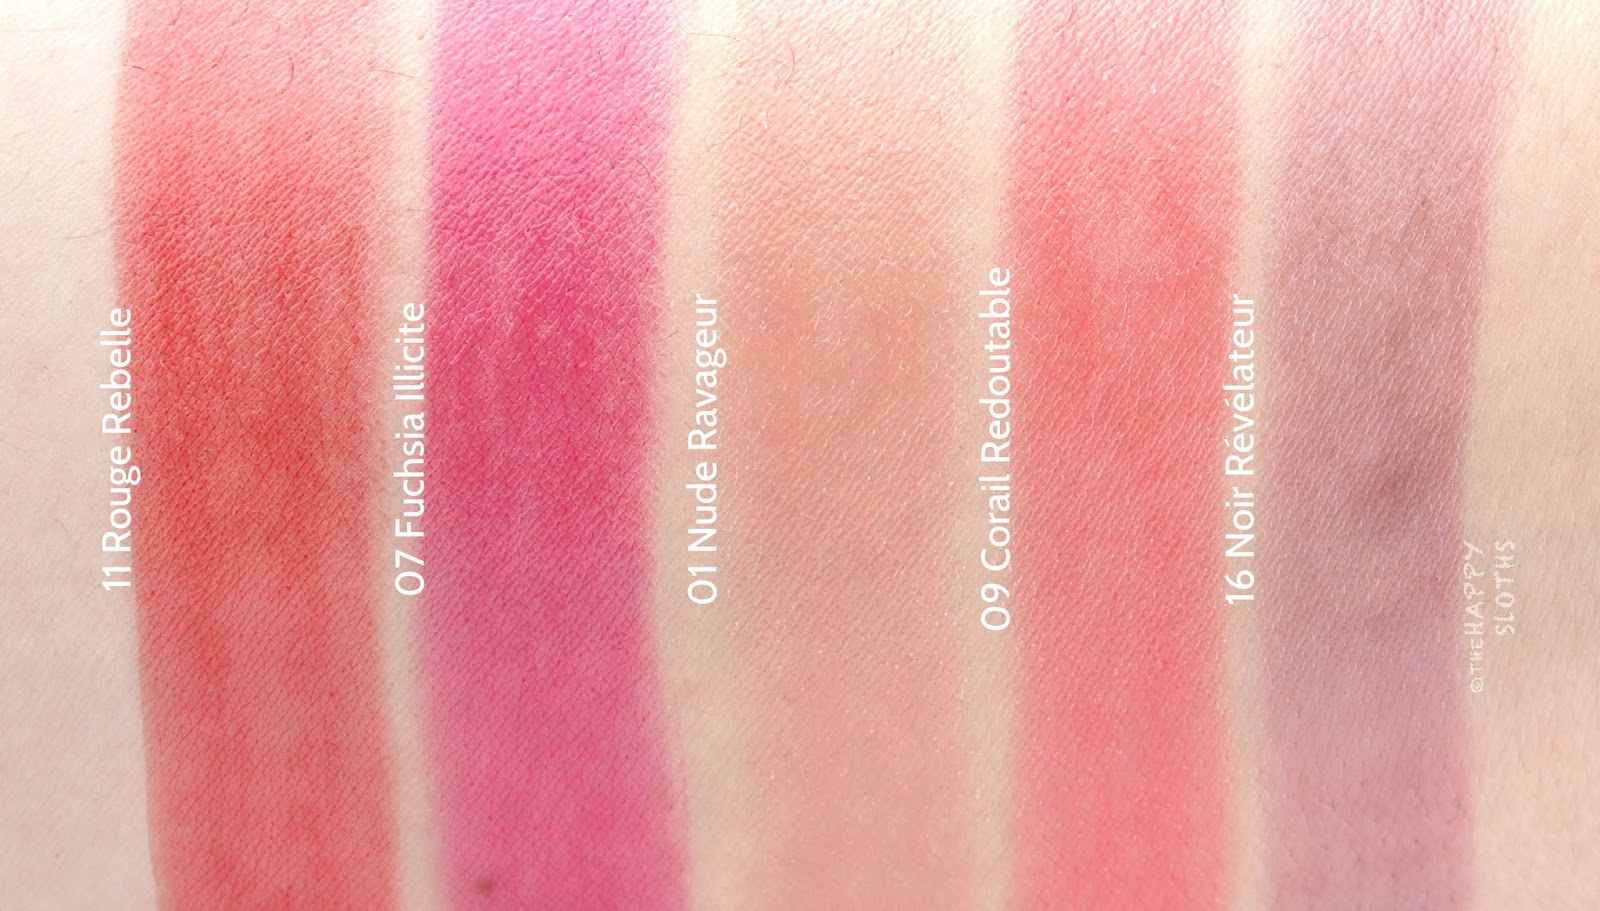 Givenchy Rouge Interdit Vinyl Color Enhancing Lipstick: Review and Swatches